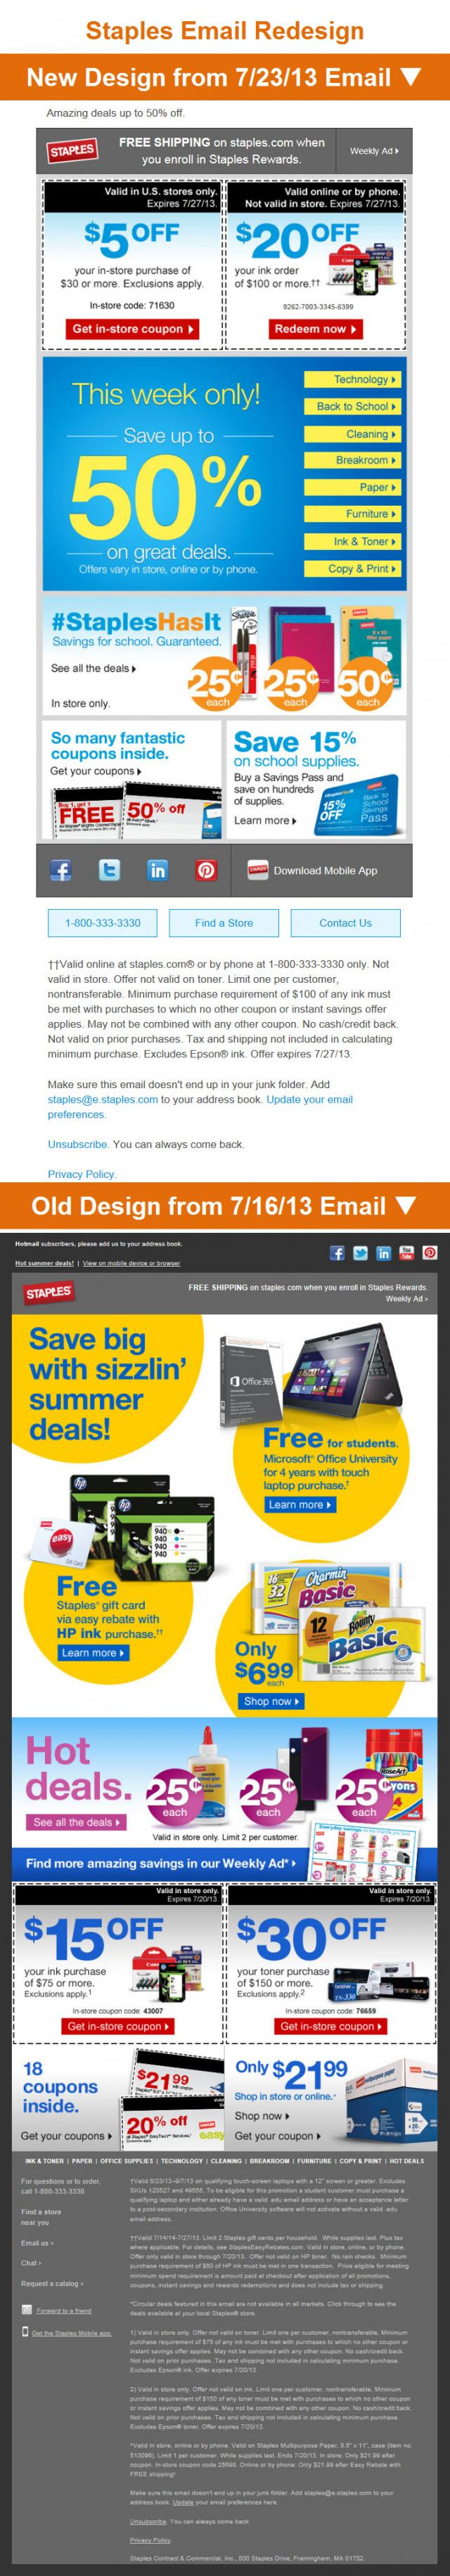 Staples Email Redesign